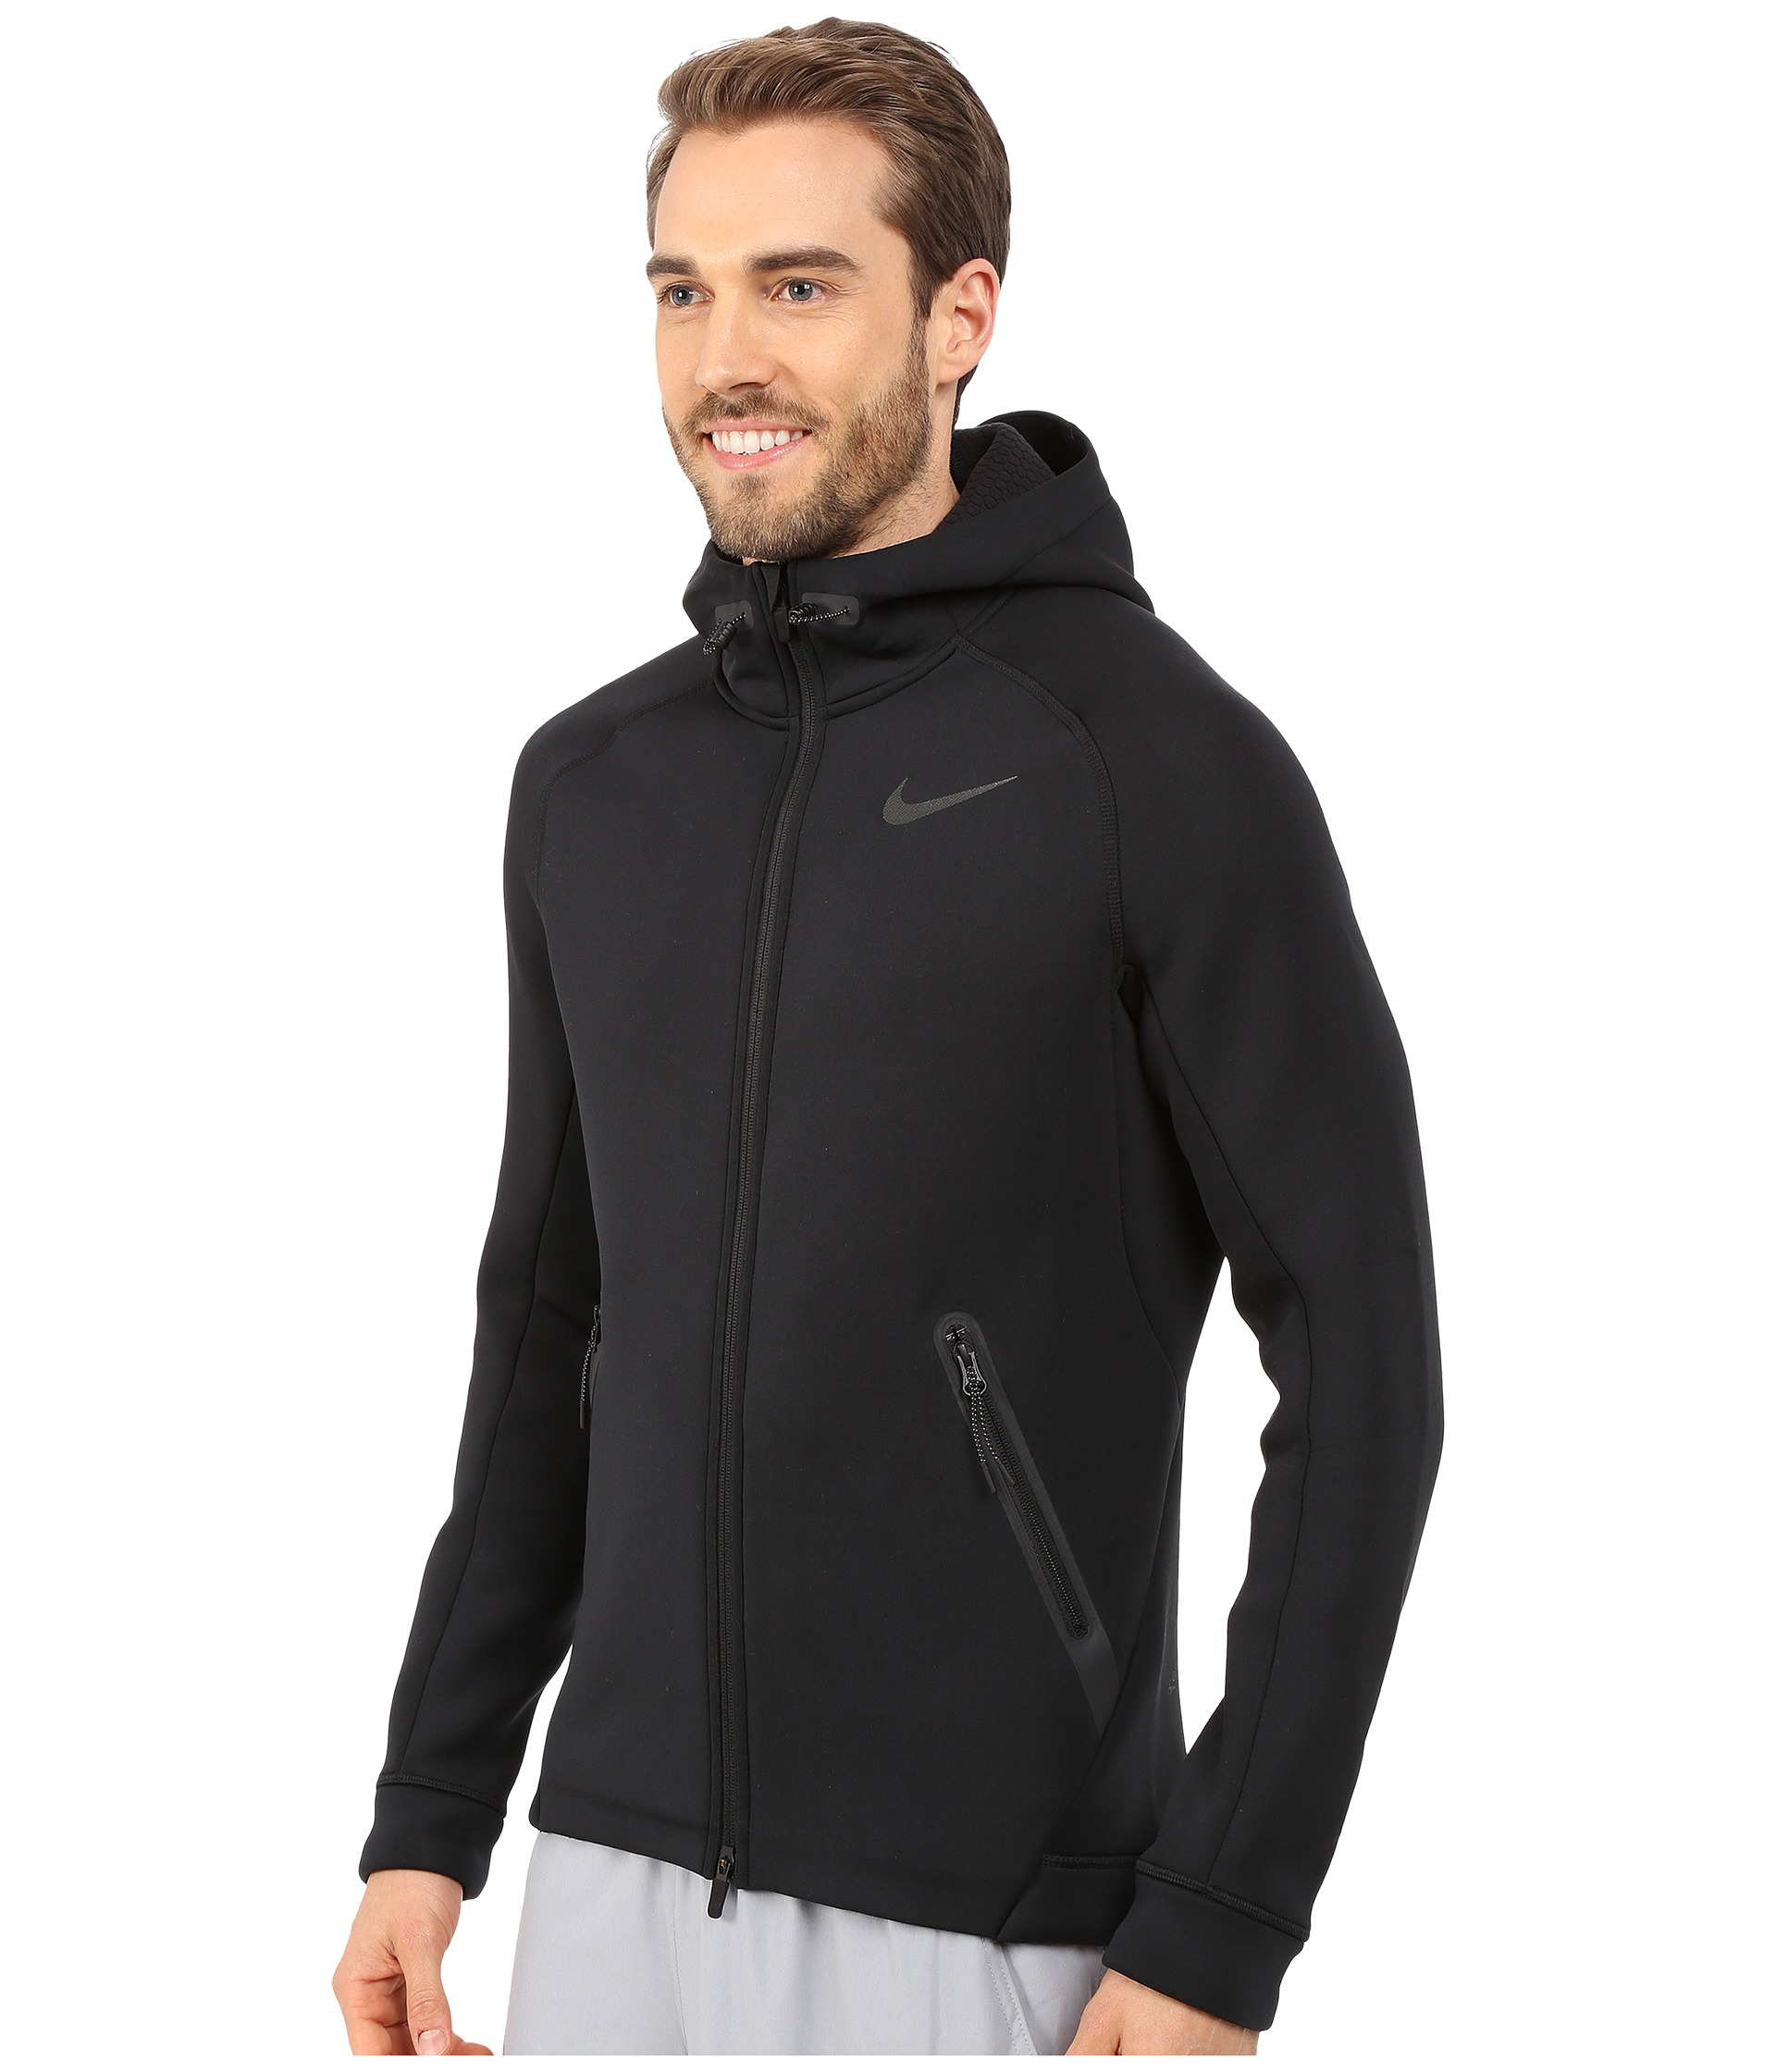 725c245fa798 Lyst - Nike Therma-sphere Max Training Jacket in Black for Men